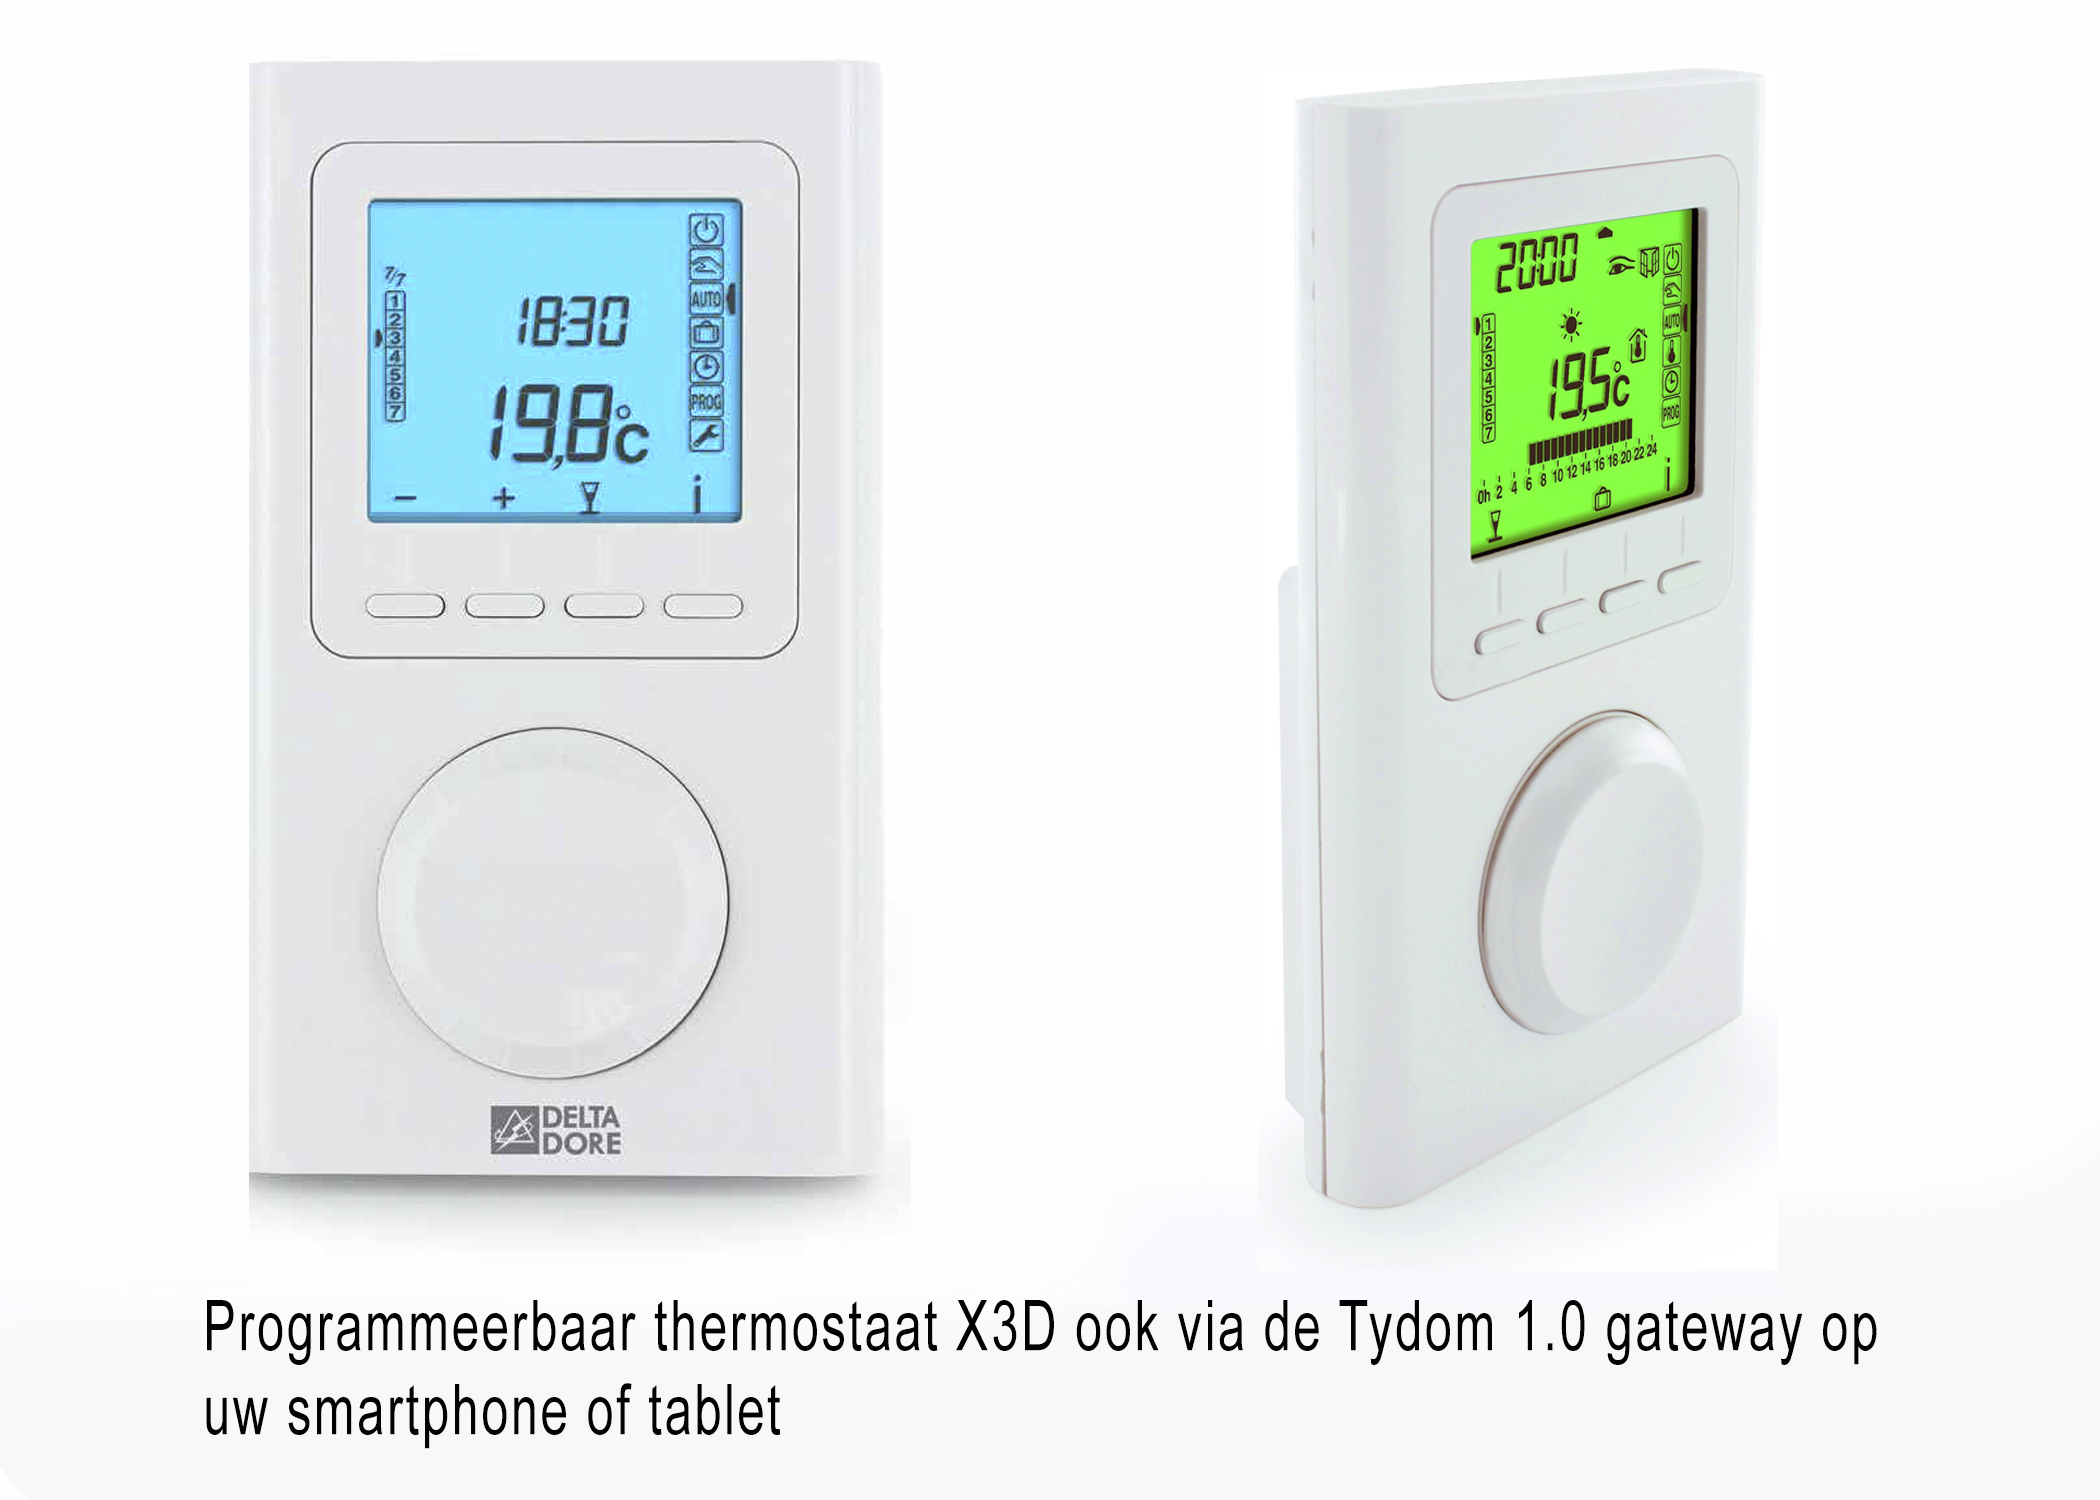 X3D thermostaat